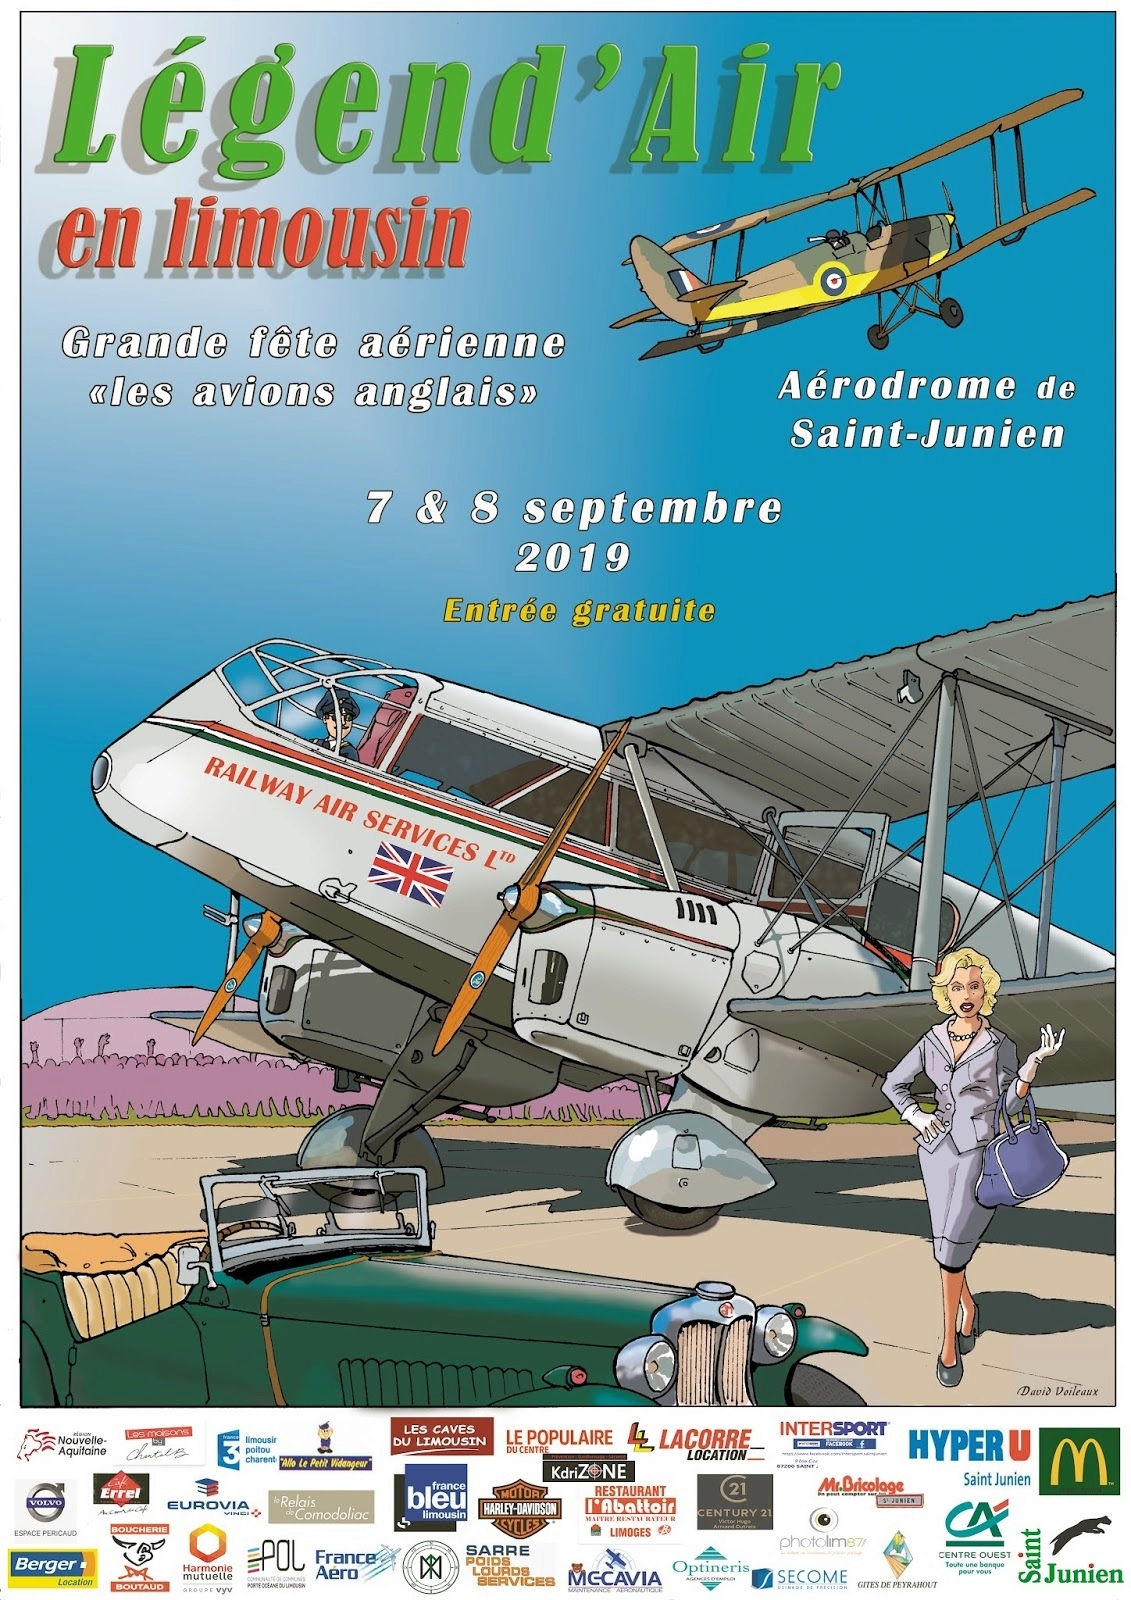 Aerodrome de Saint Junien Limousin Legend'Air en limousin Meeting Aerien 2019